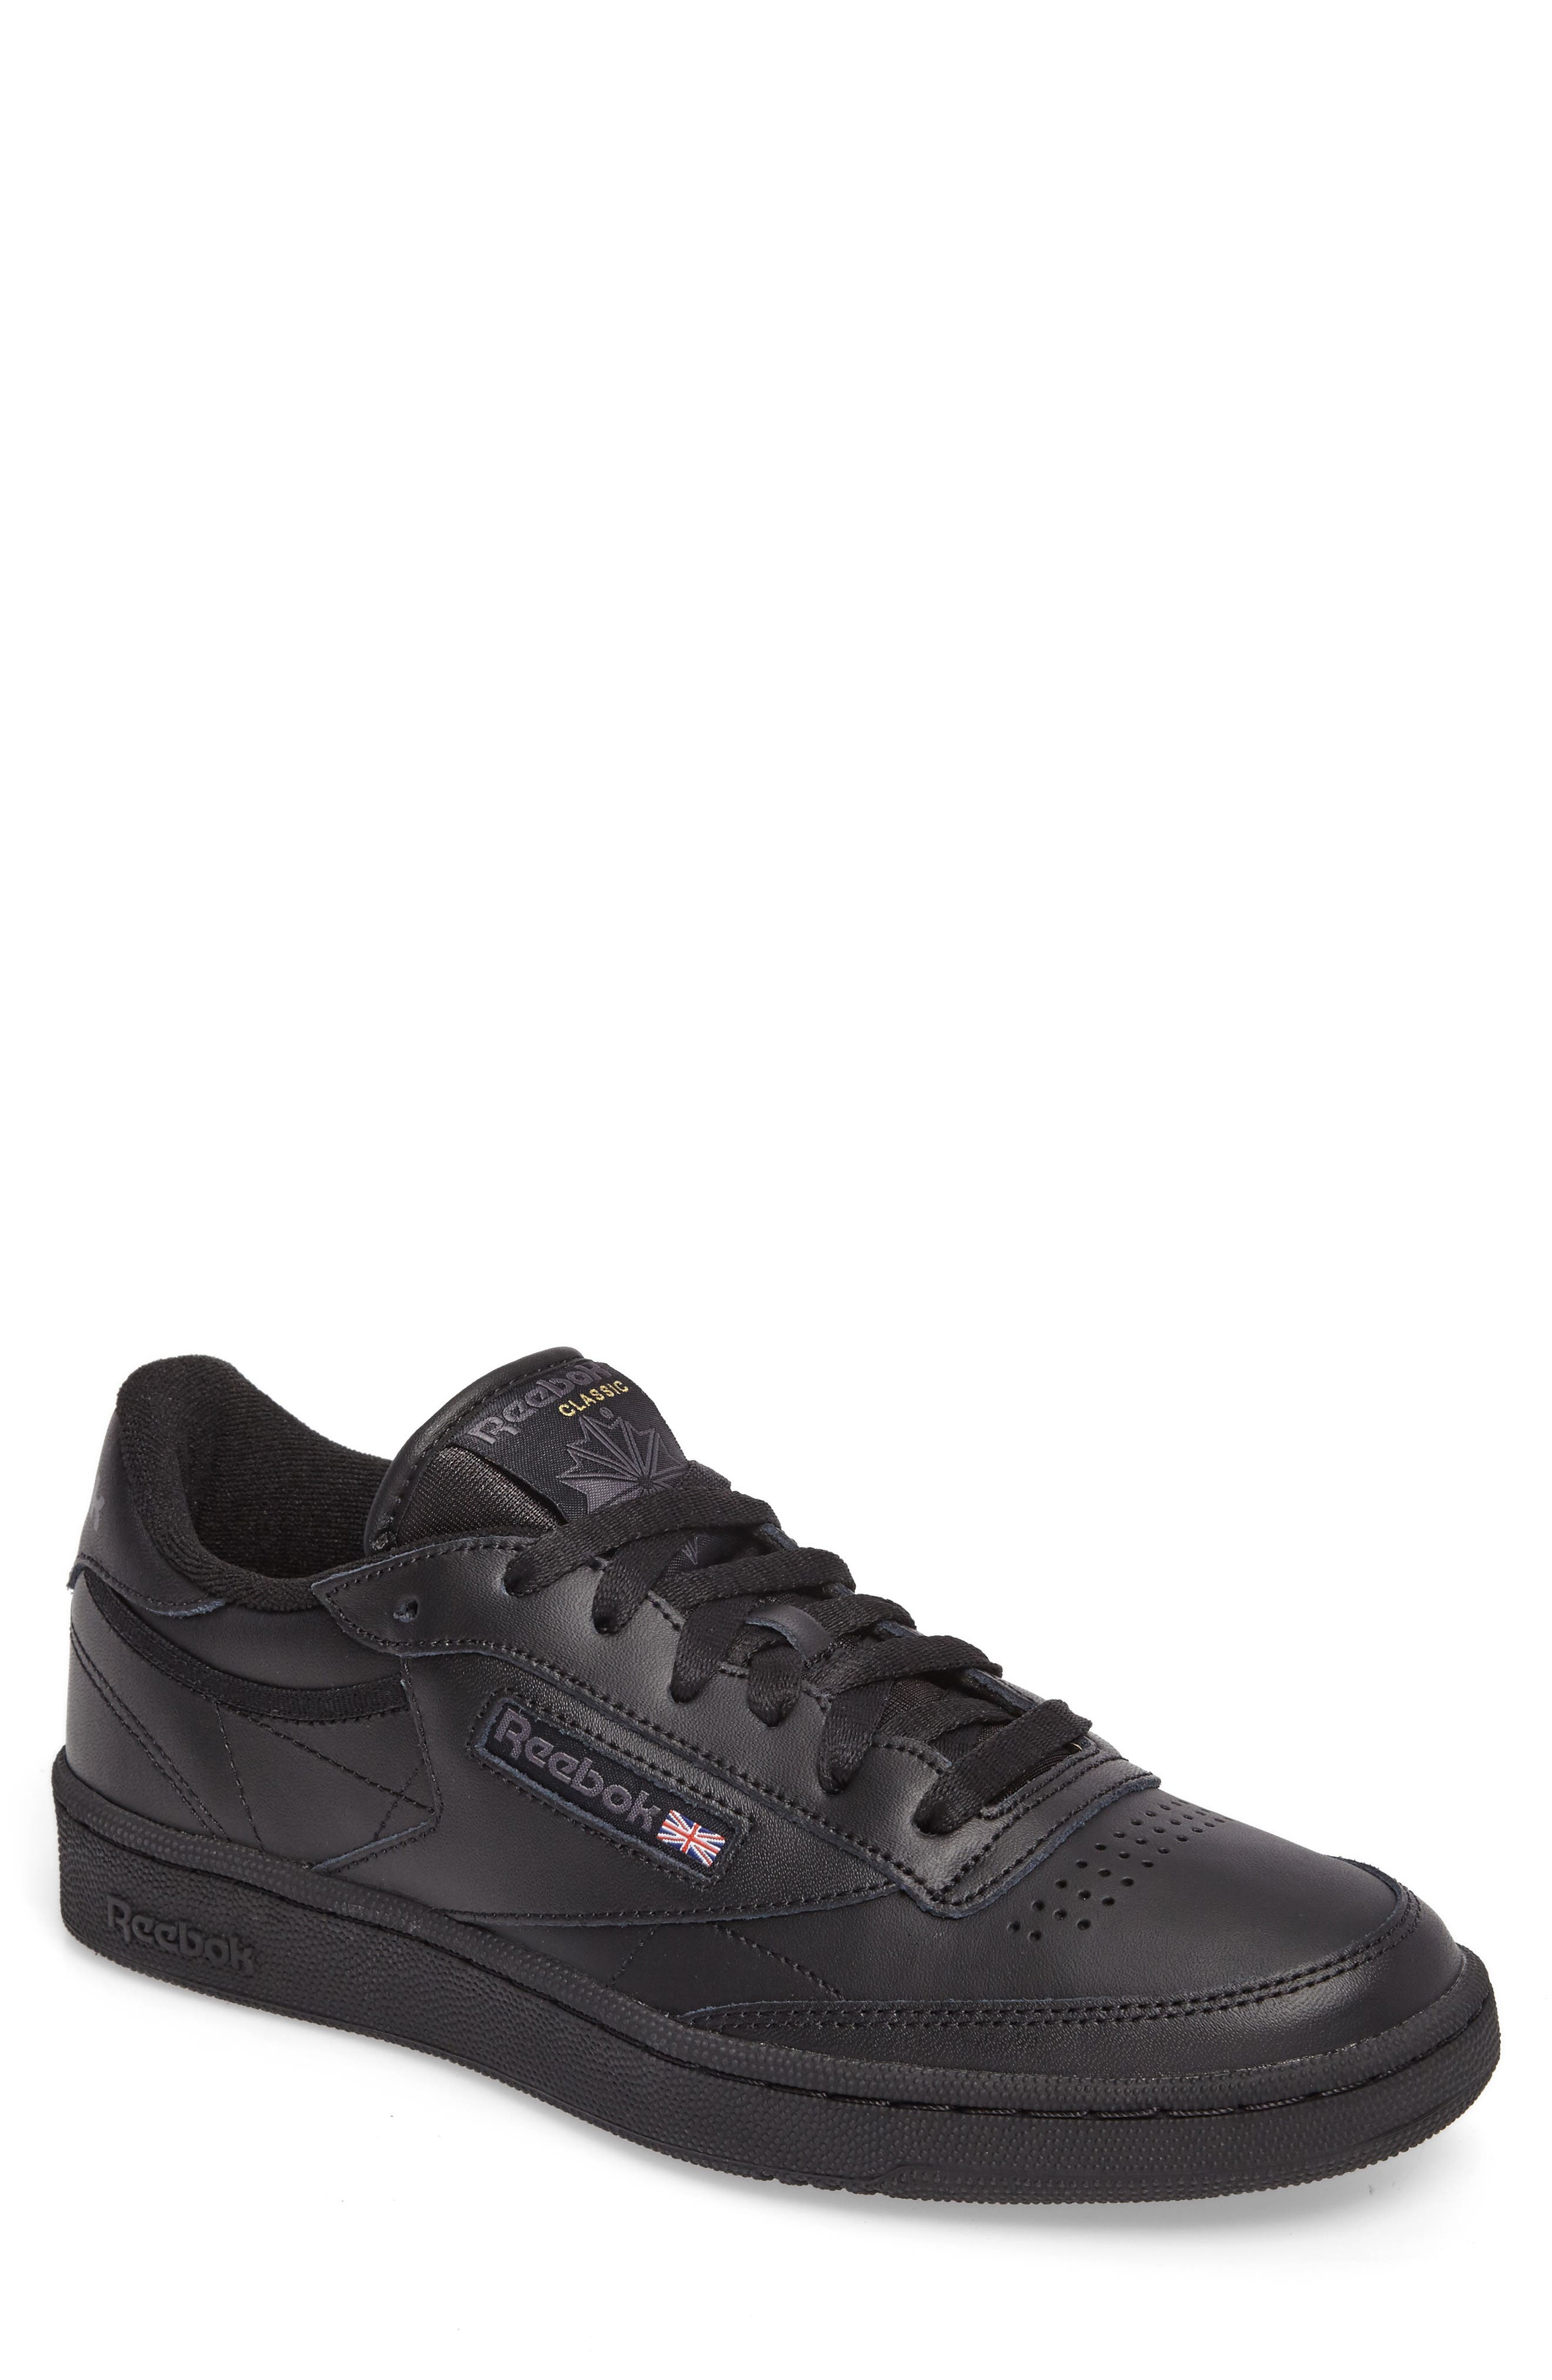 REEBOK Club C 85 Sneaker, Main, color, 001